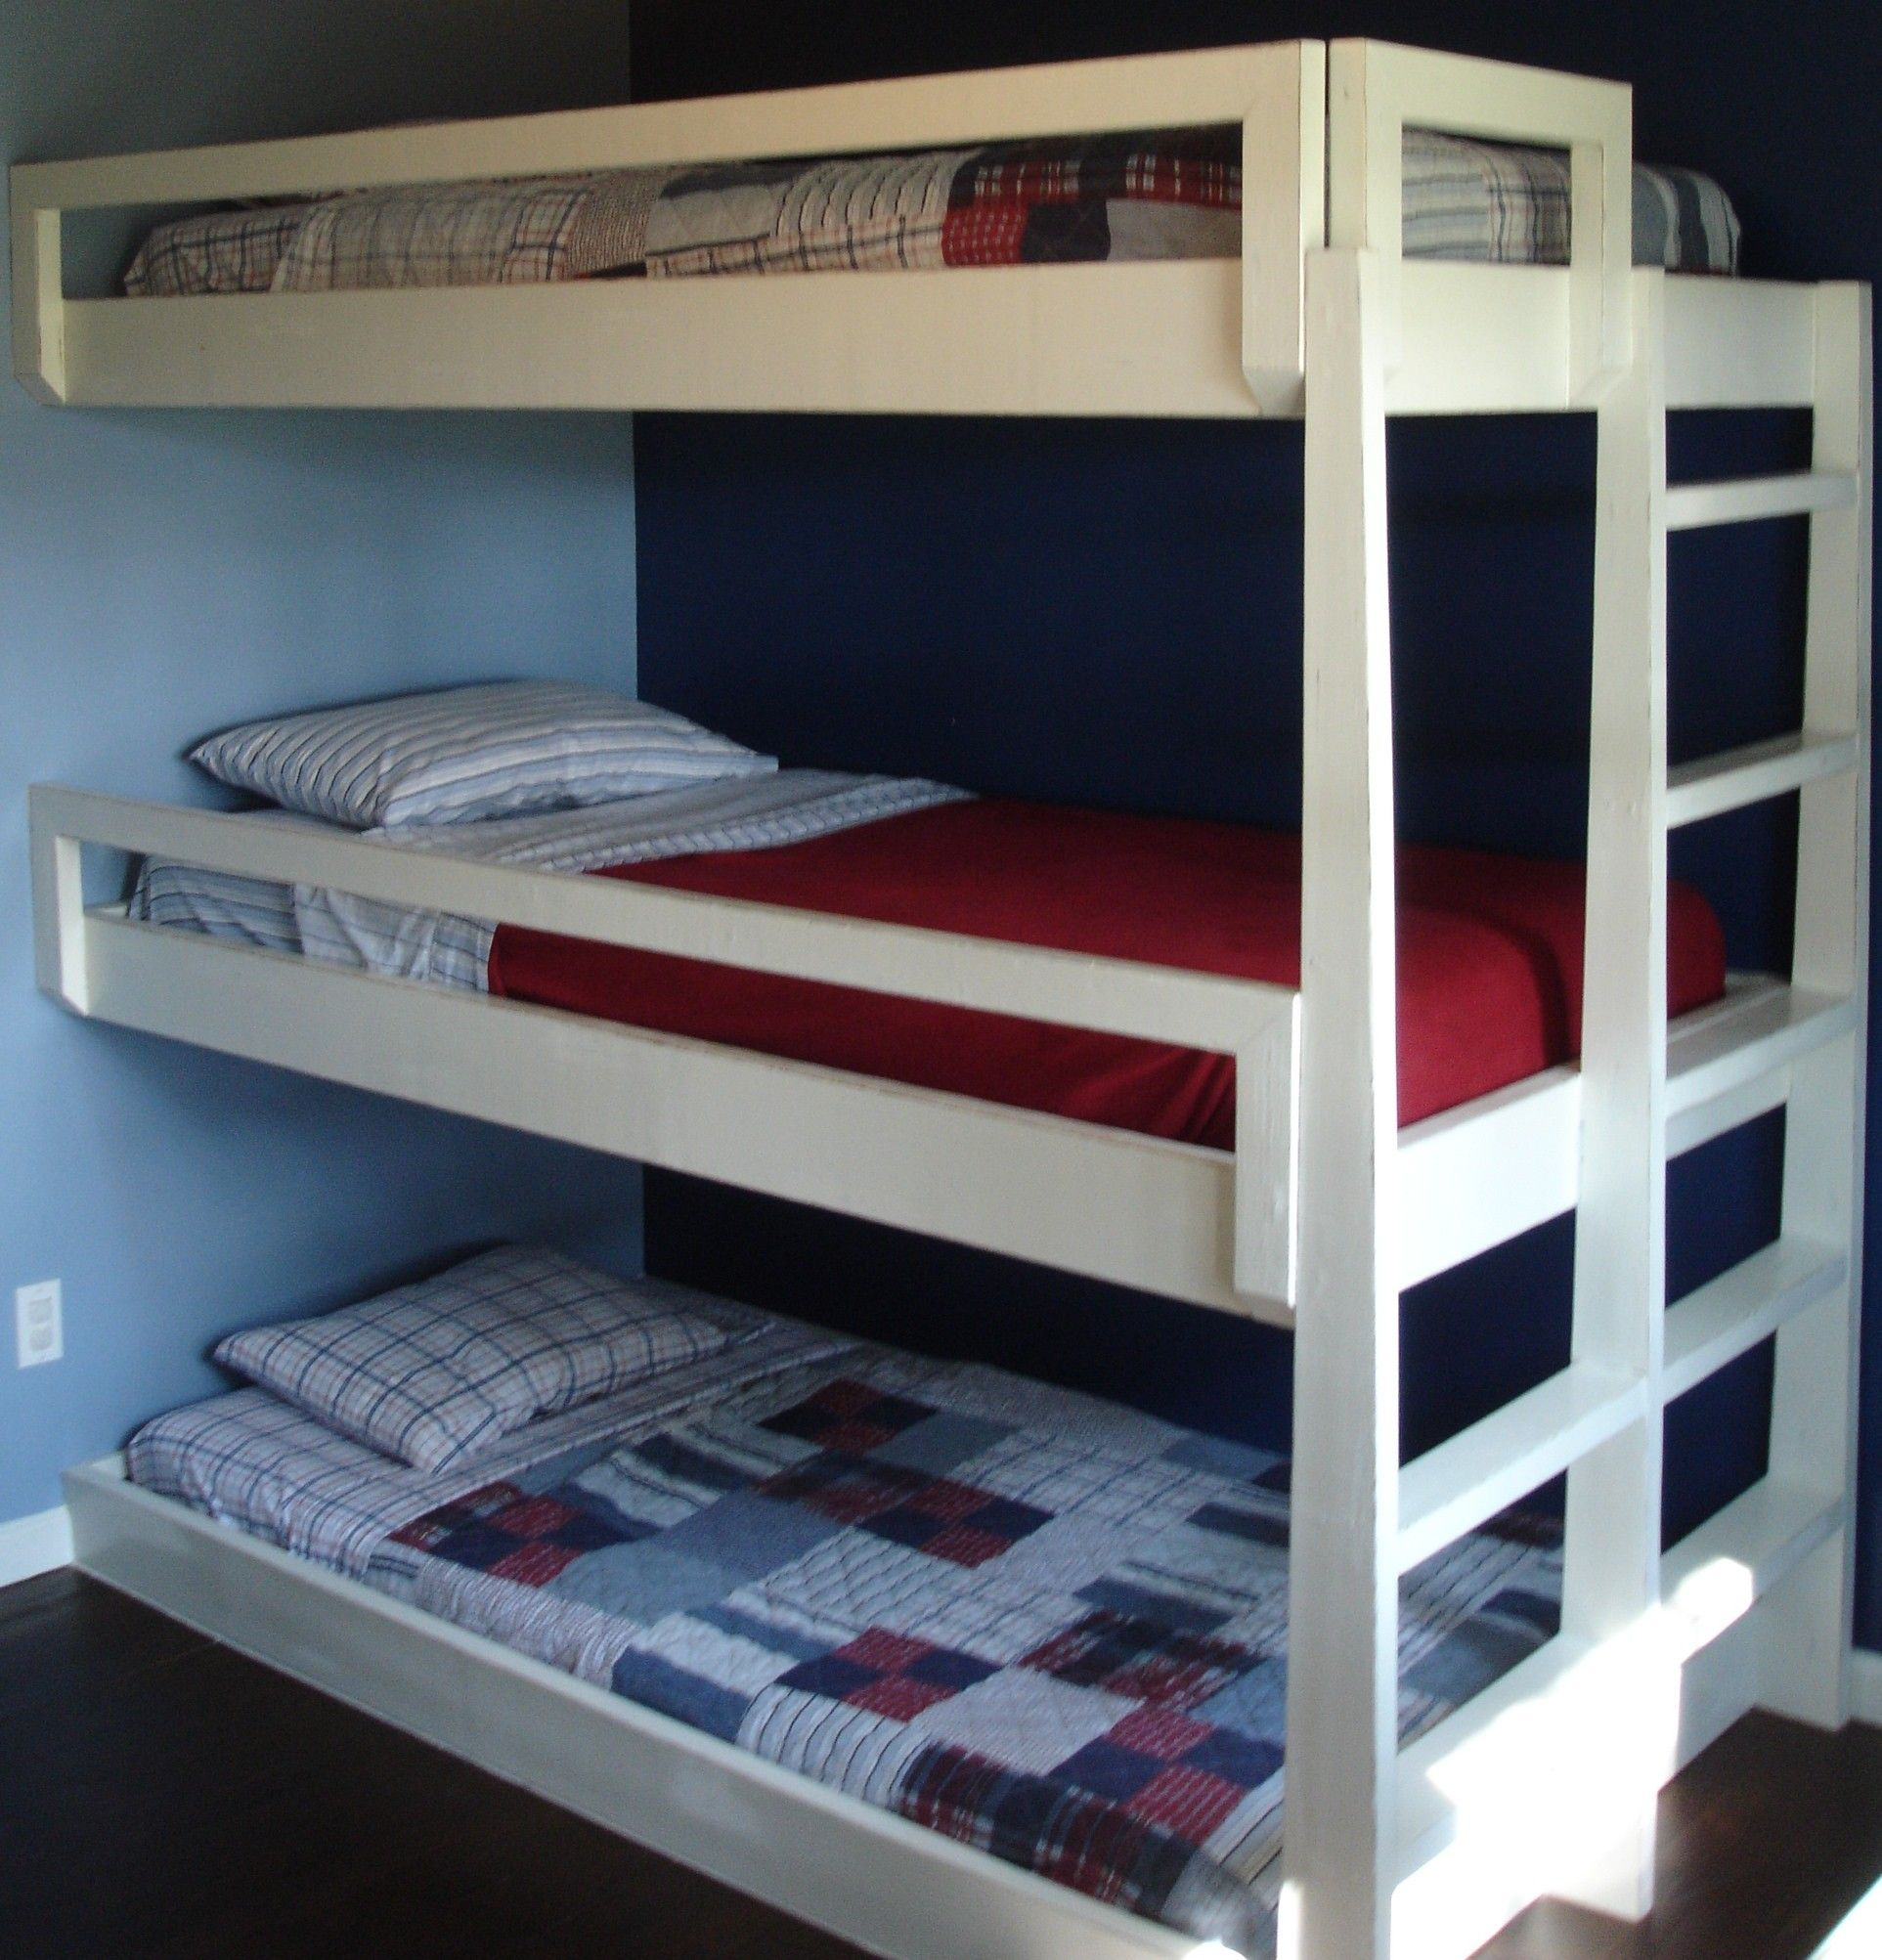 Grandkids bunk beds Triple Bunk Bed i like the ladders placement on this bunkbed